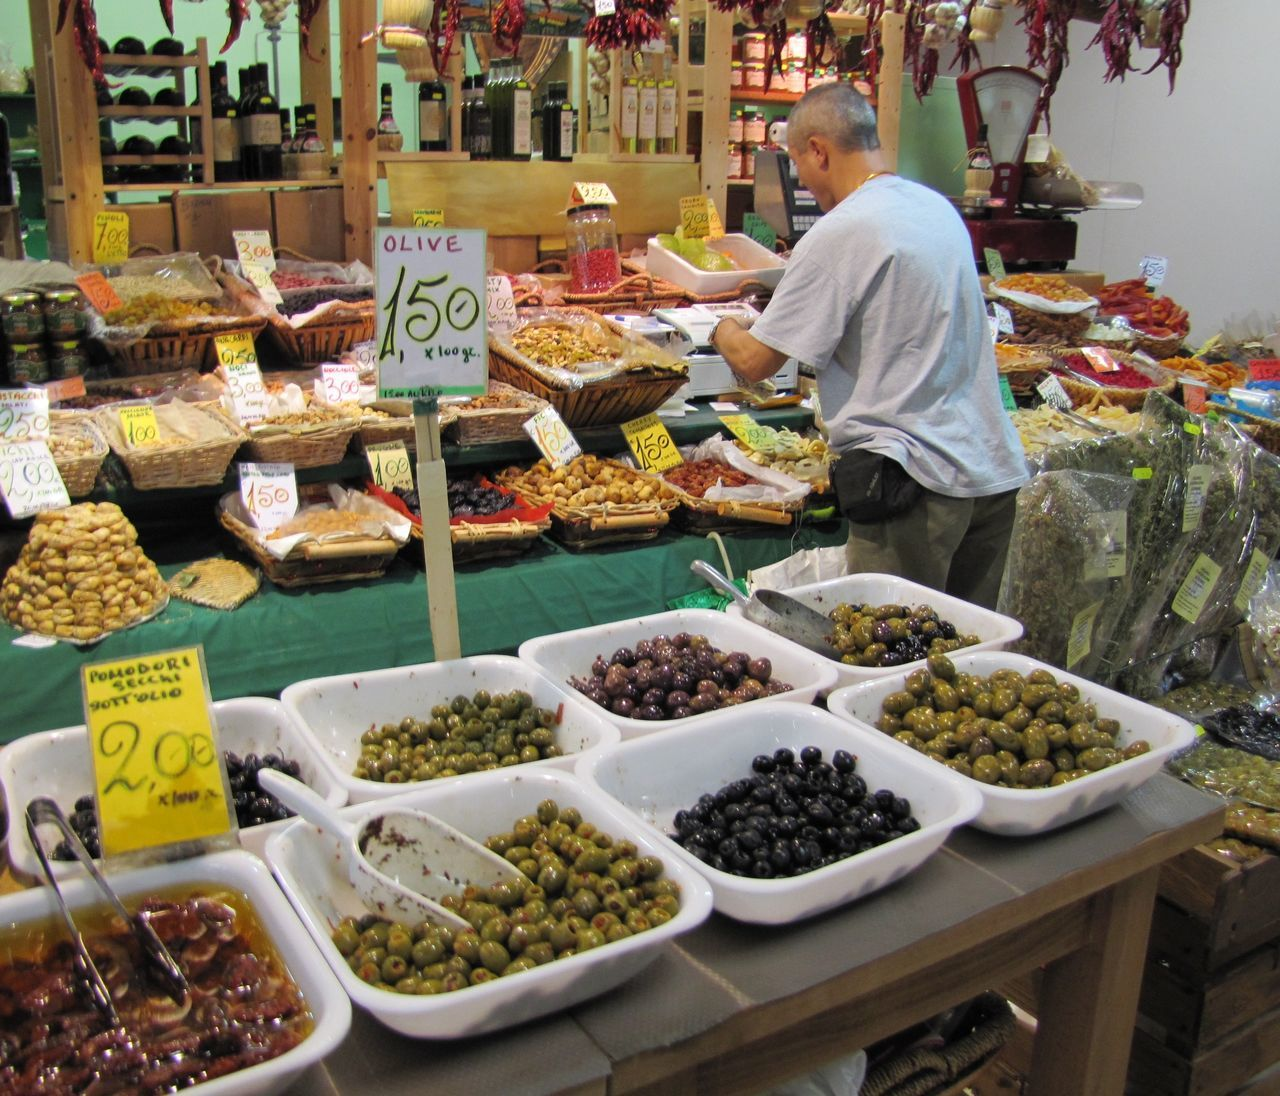 Chillis Firenze Mercato Centrale Merchant Olives & Olives Market Delisioso Hungry! Live Love Shop